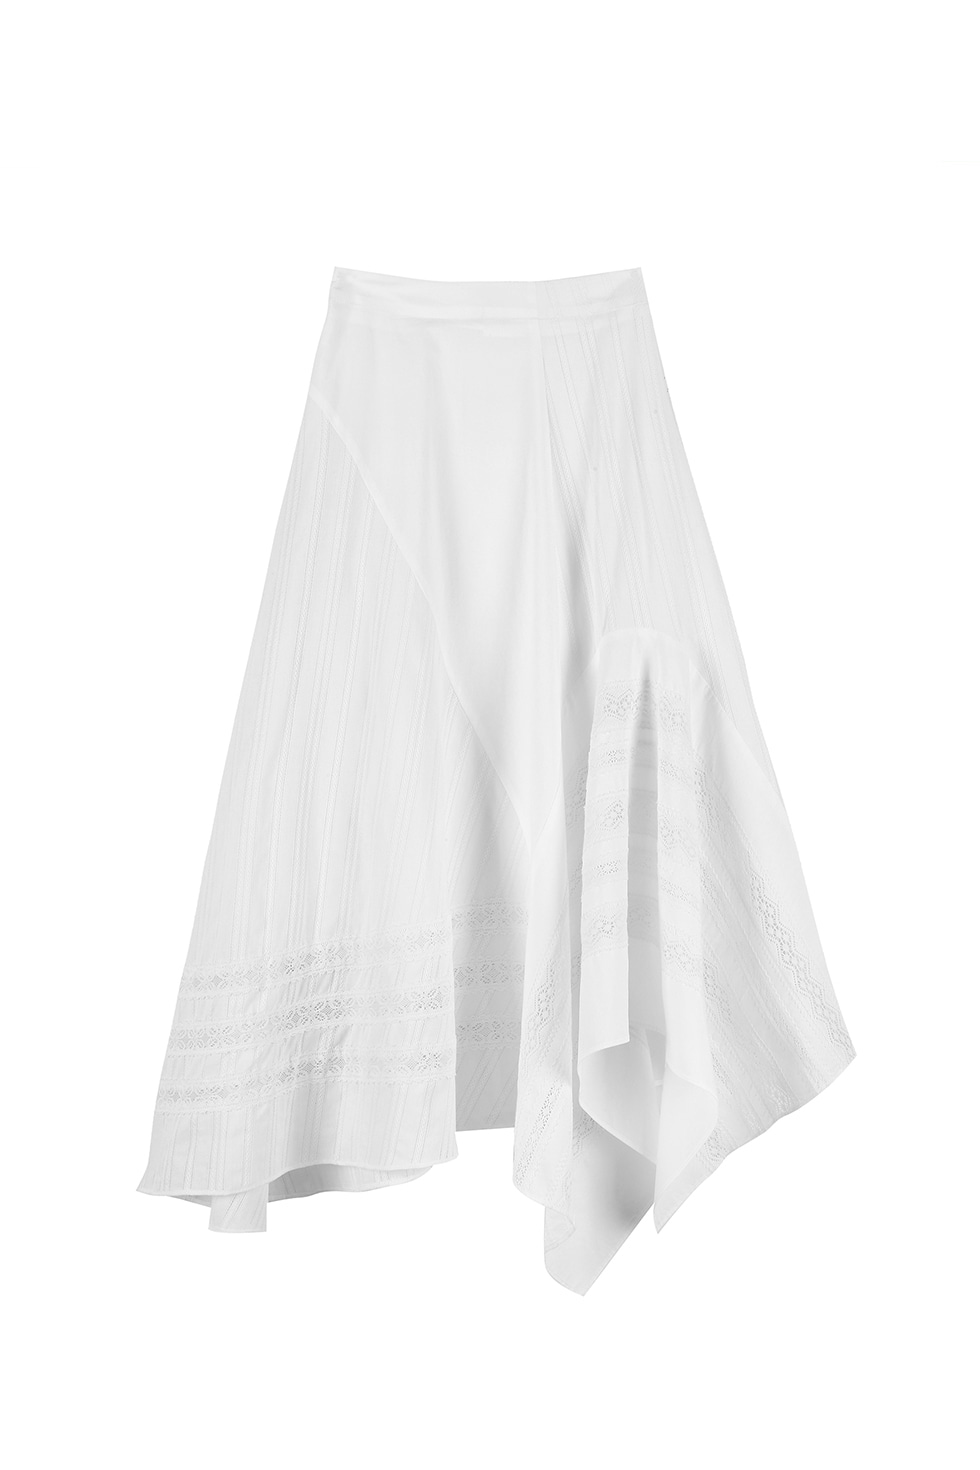 LACE TAPE SKIRT - WHITE